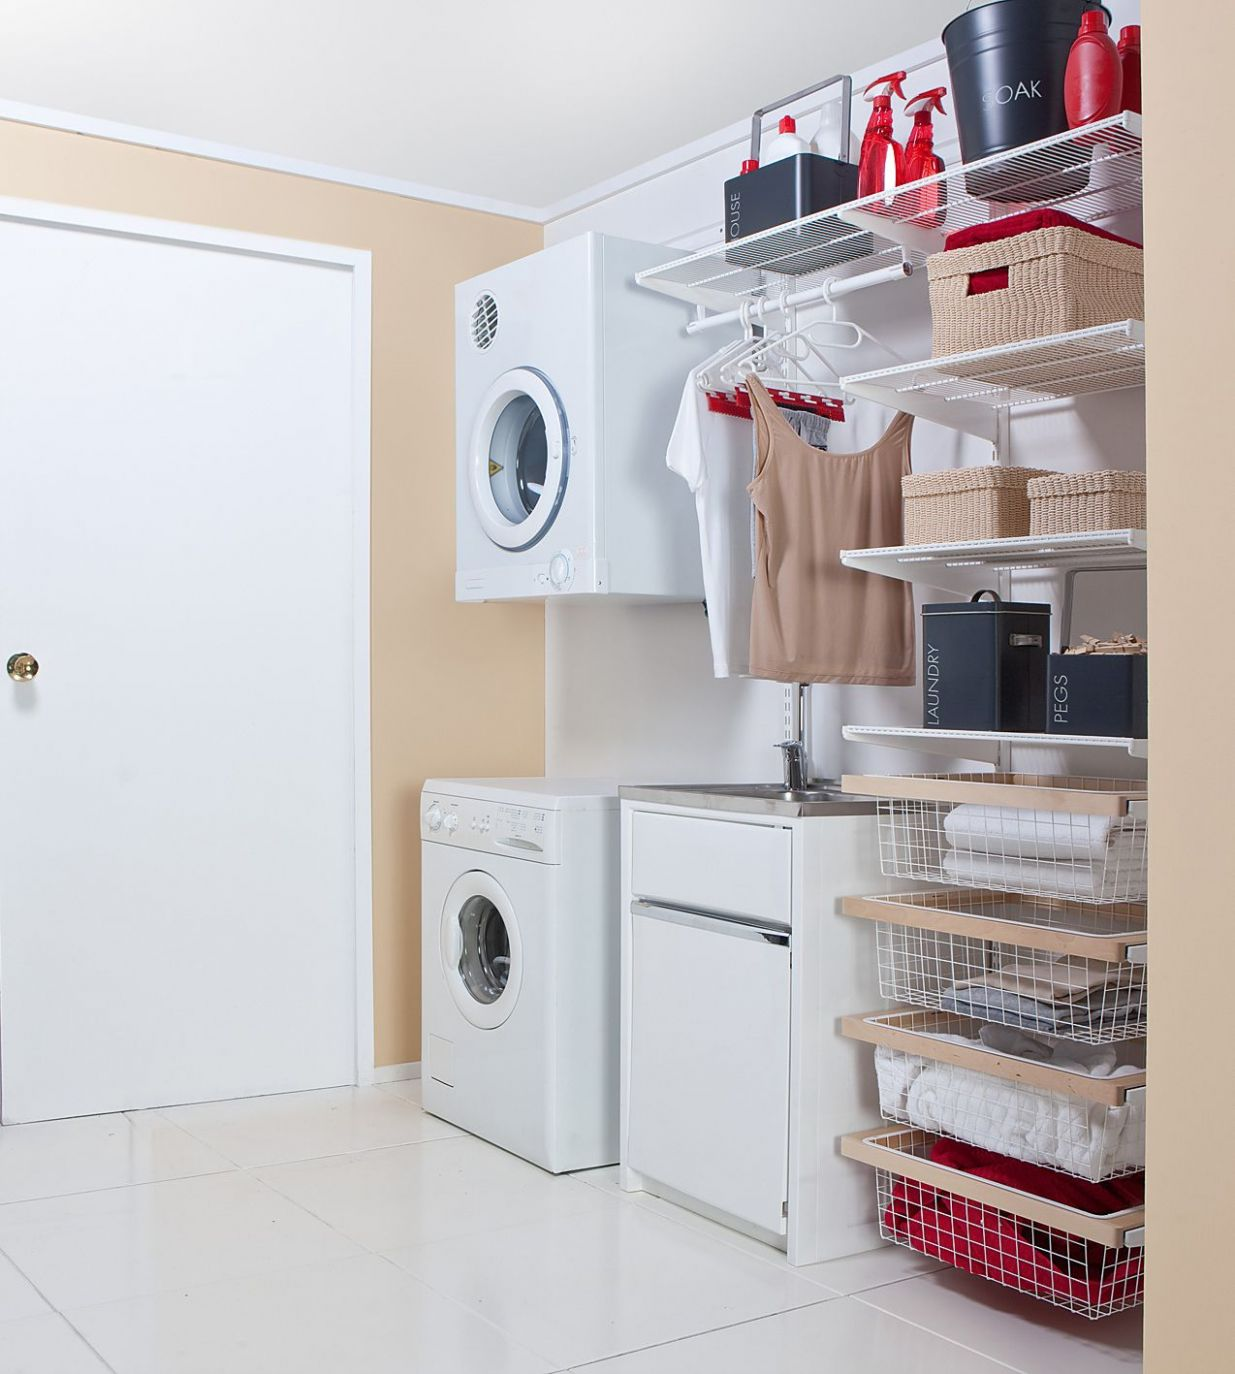 Elfa also has sliding doors to close off a laundry space. Walk ..